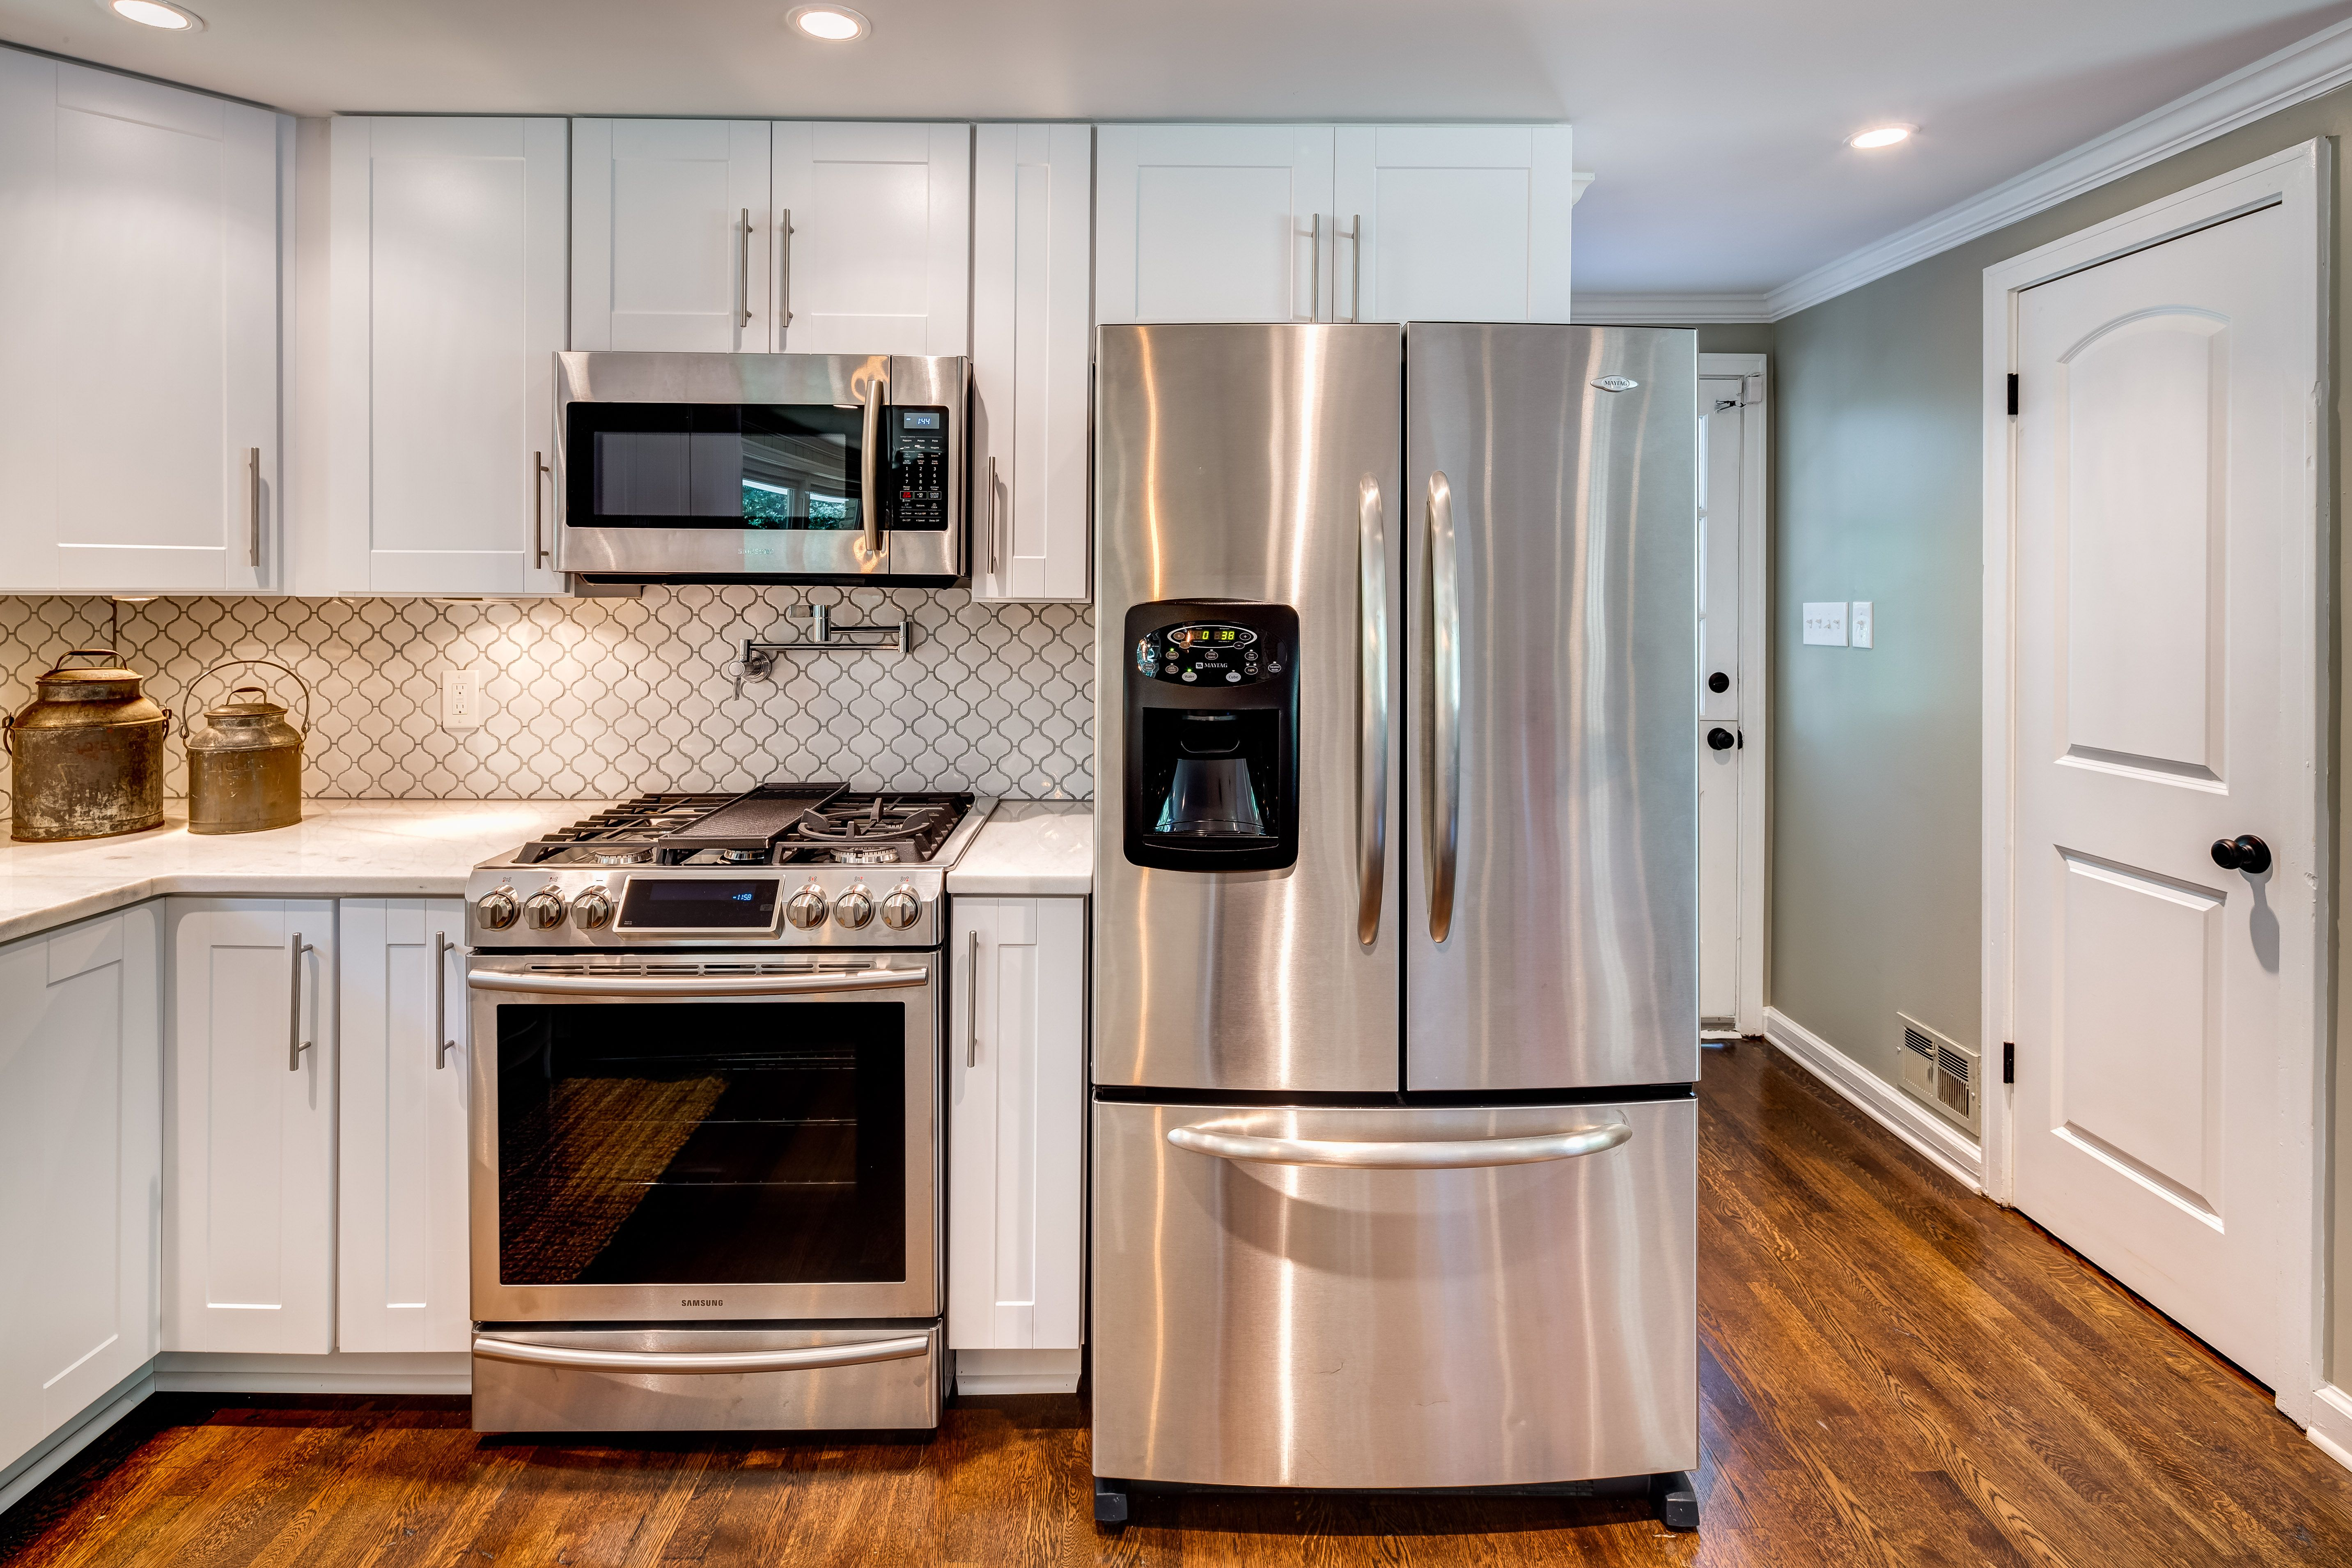 Tile And Cabinet Work For Sandy Springs Atlanta Ga Kitchen Renovation Kitchen Renovation Kitchen Kitchen Cabinets